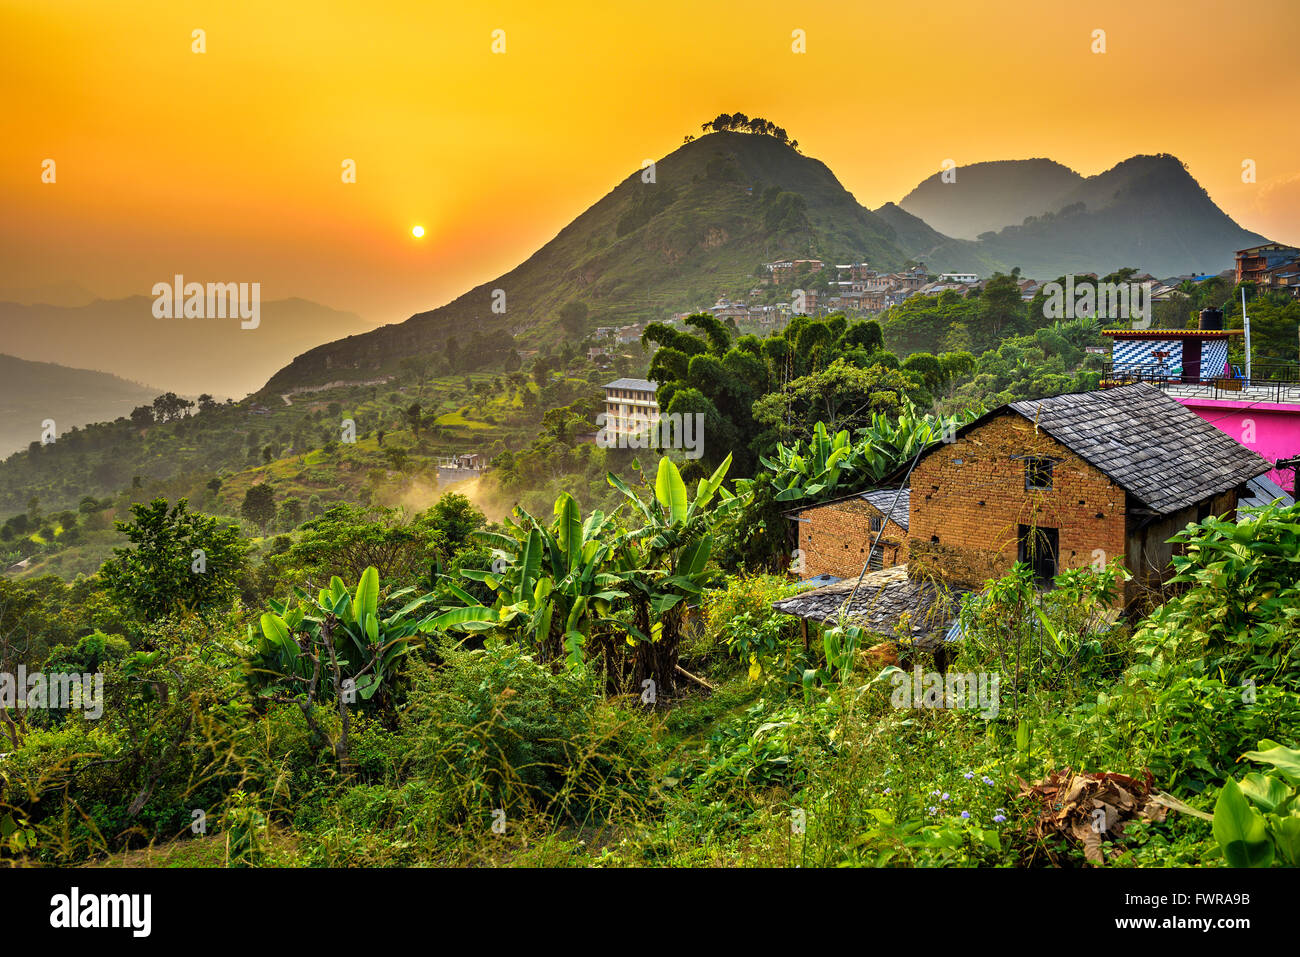 Sunset above Bandipur in Nepal - Stock Image